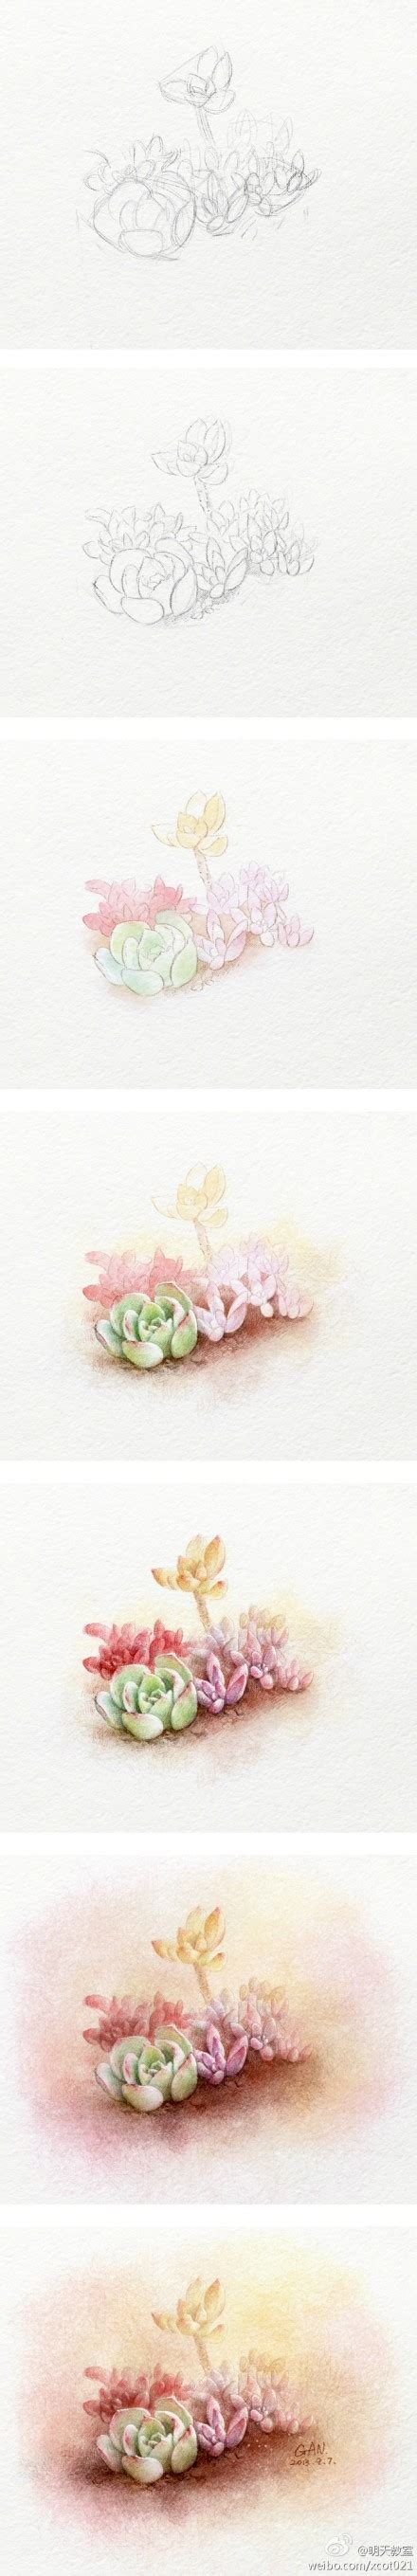 tutorial watercolor pencils colored pencil drawing of succulents step by step